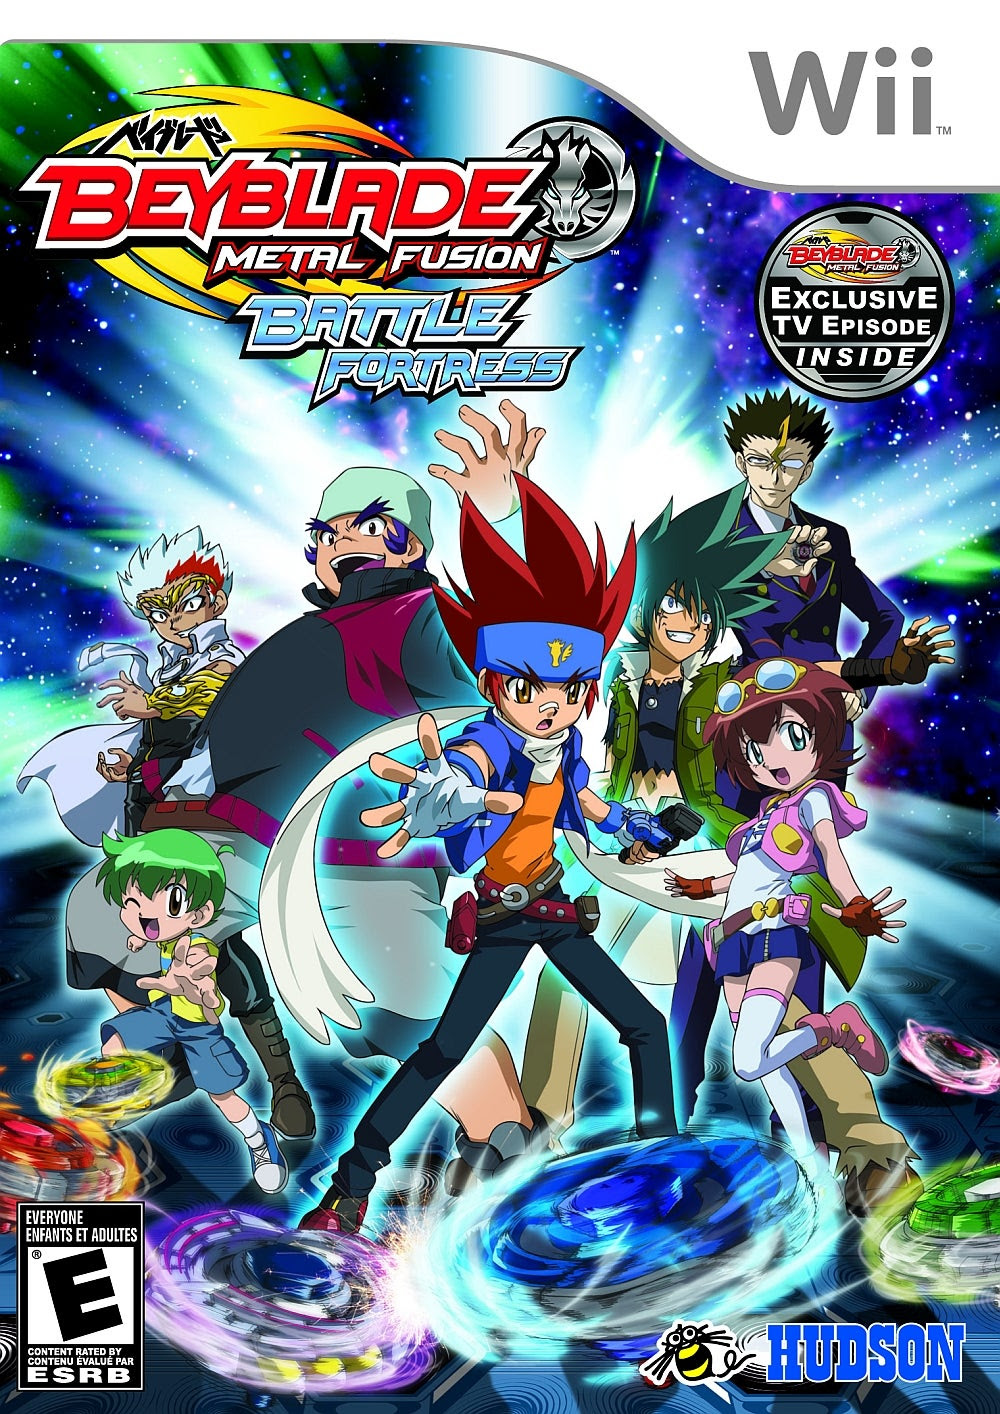 Beyblade: Metal Fusion -- Battle Fortress - IGN.com